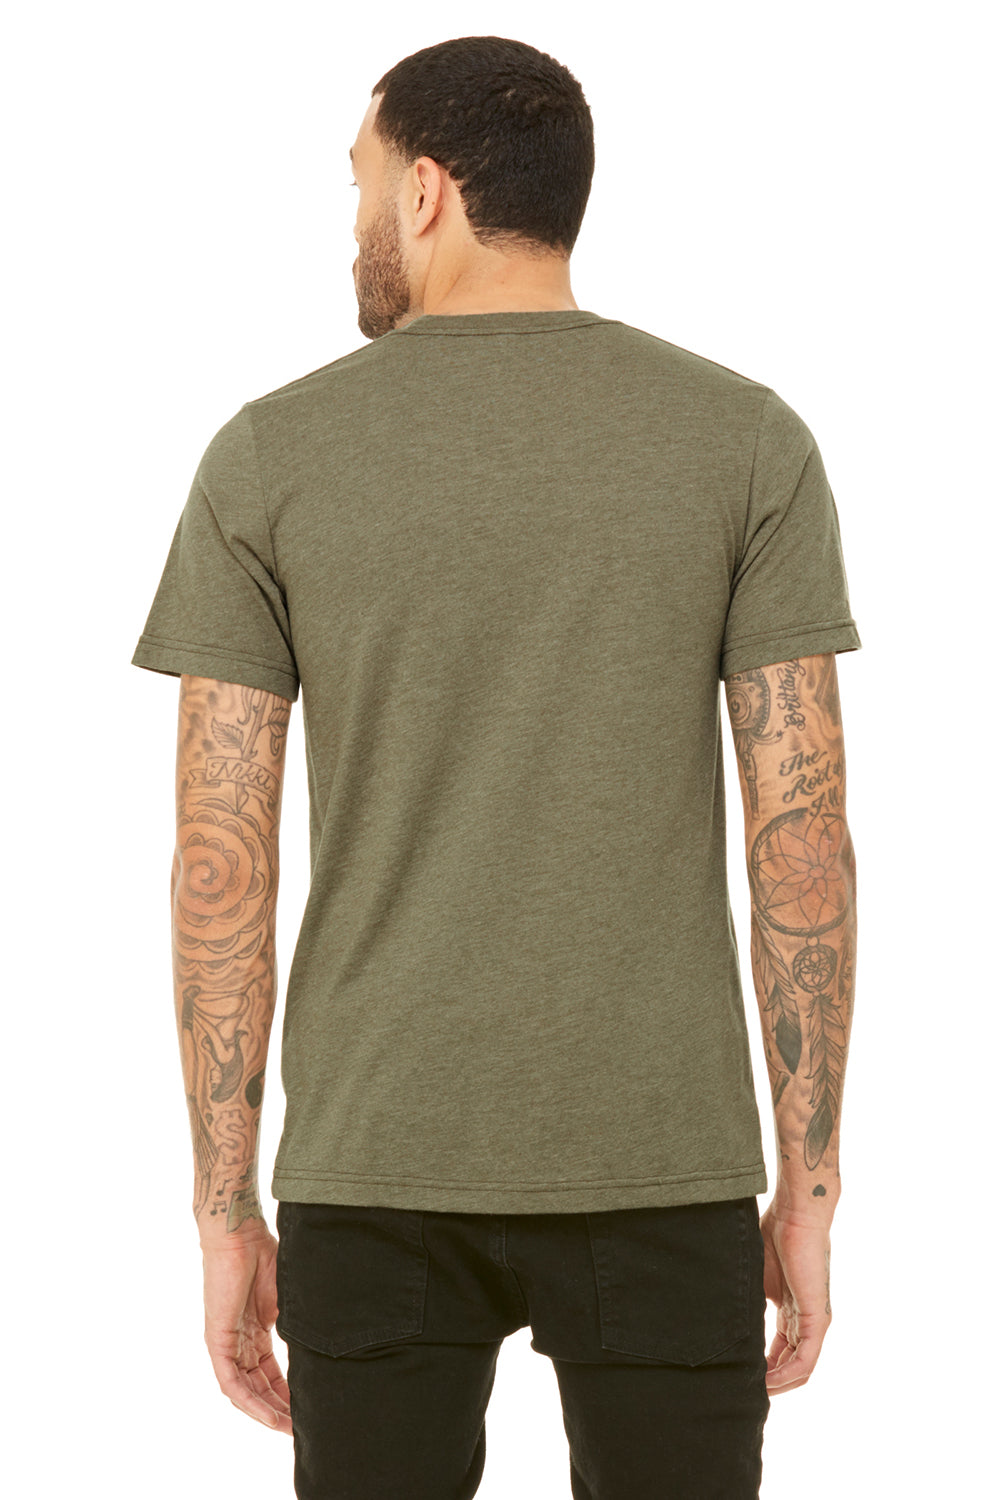 Bella + Canvas 3001C Mens Jersey Short Sleeve Crewneck T-Shirt Heather Olive Green Back